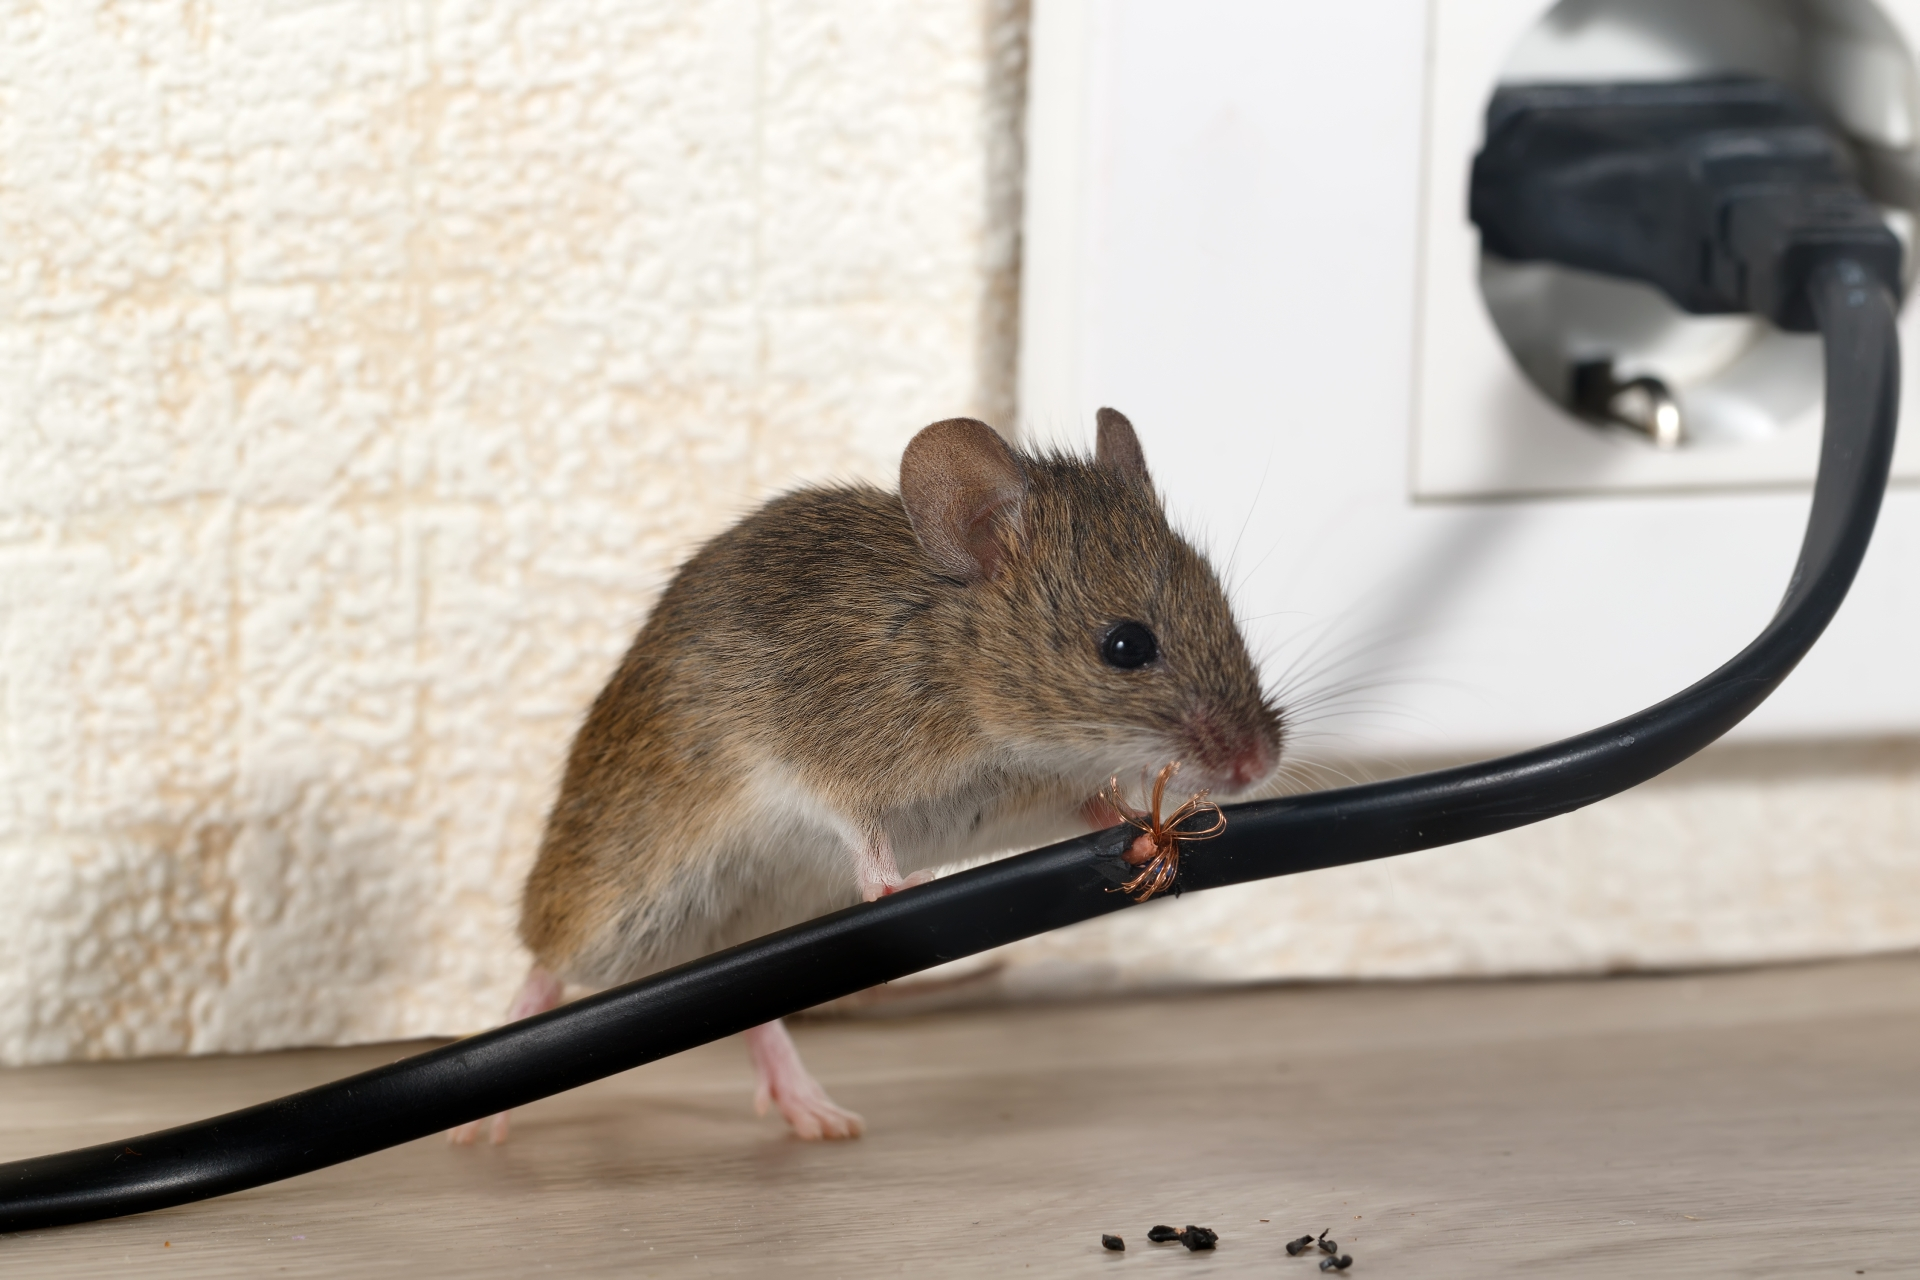 Mice Infestation, Pest Control in Southgate, N14. Call Now 020 8166 9746